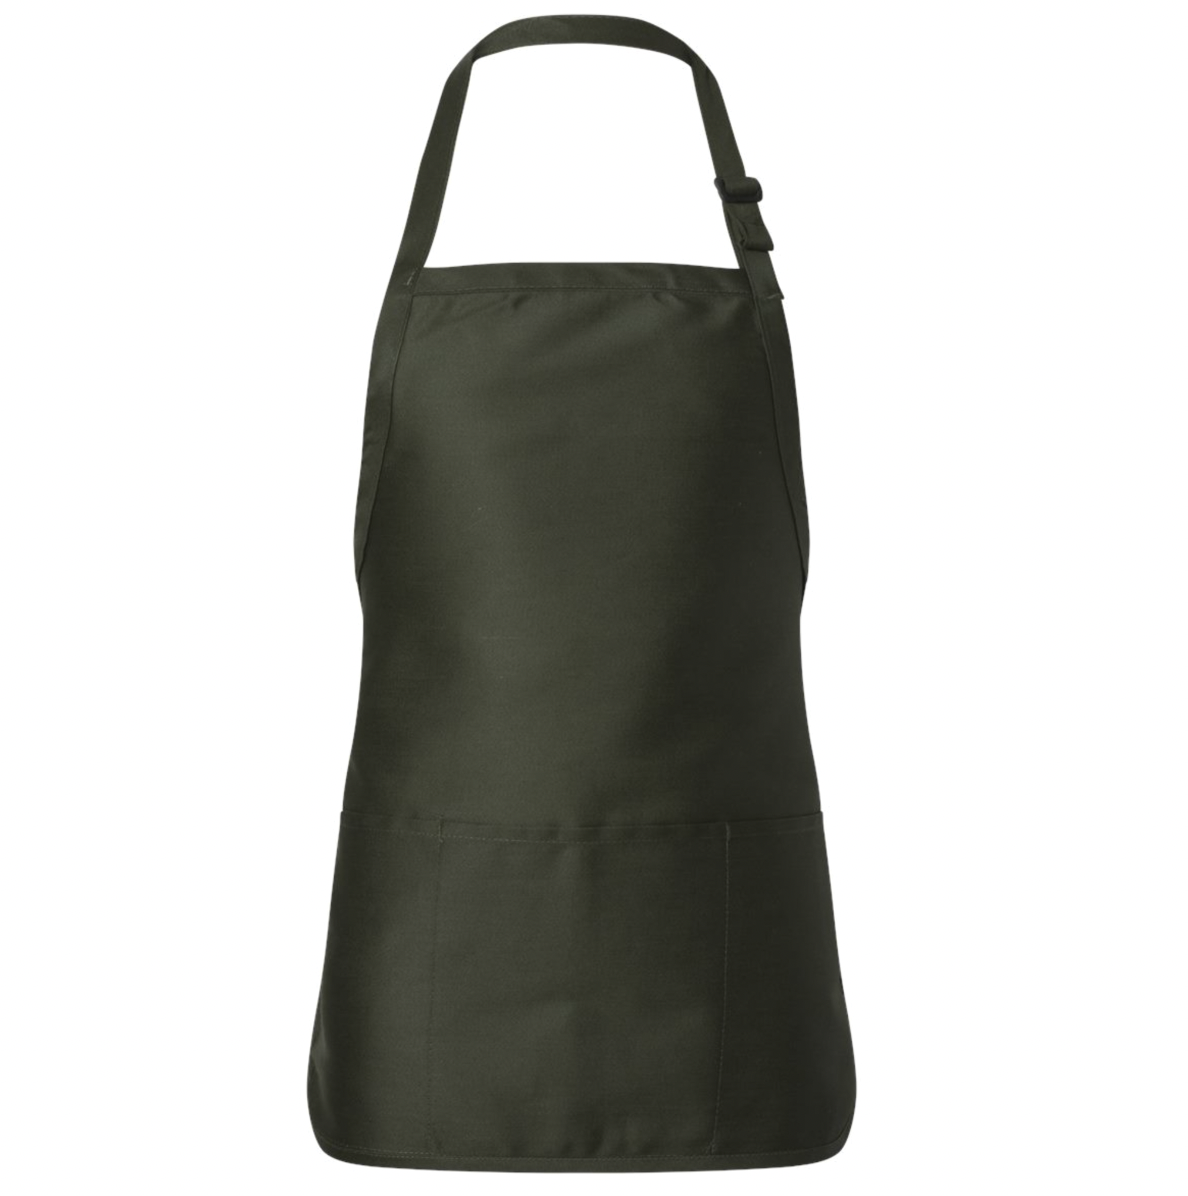 Q-Tees - Full-Length Apron with Pouch Pocket - Q4250